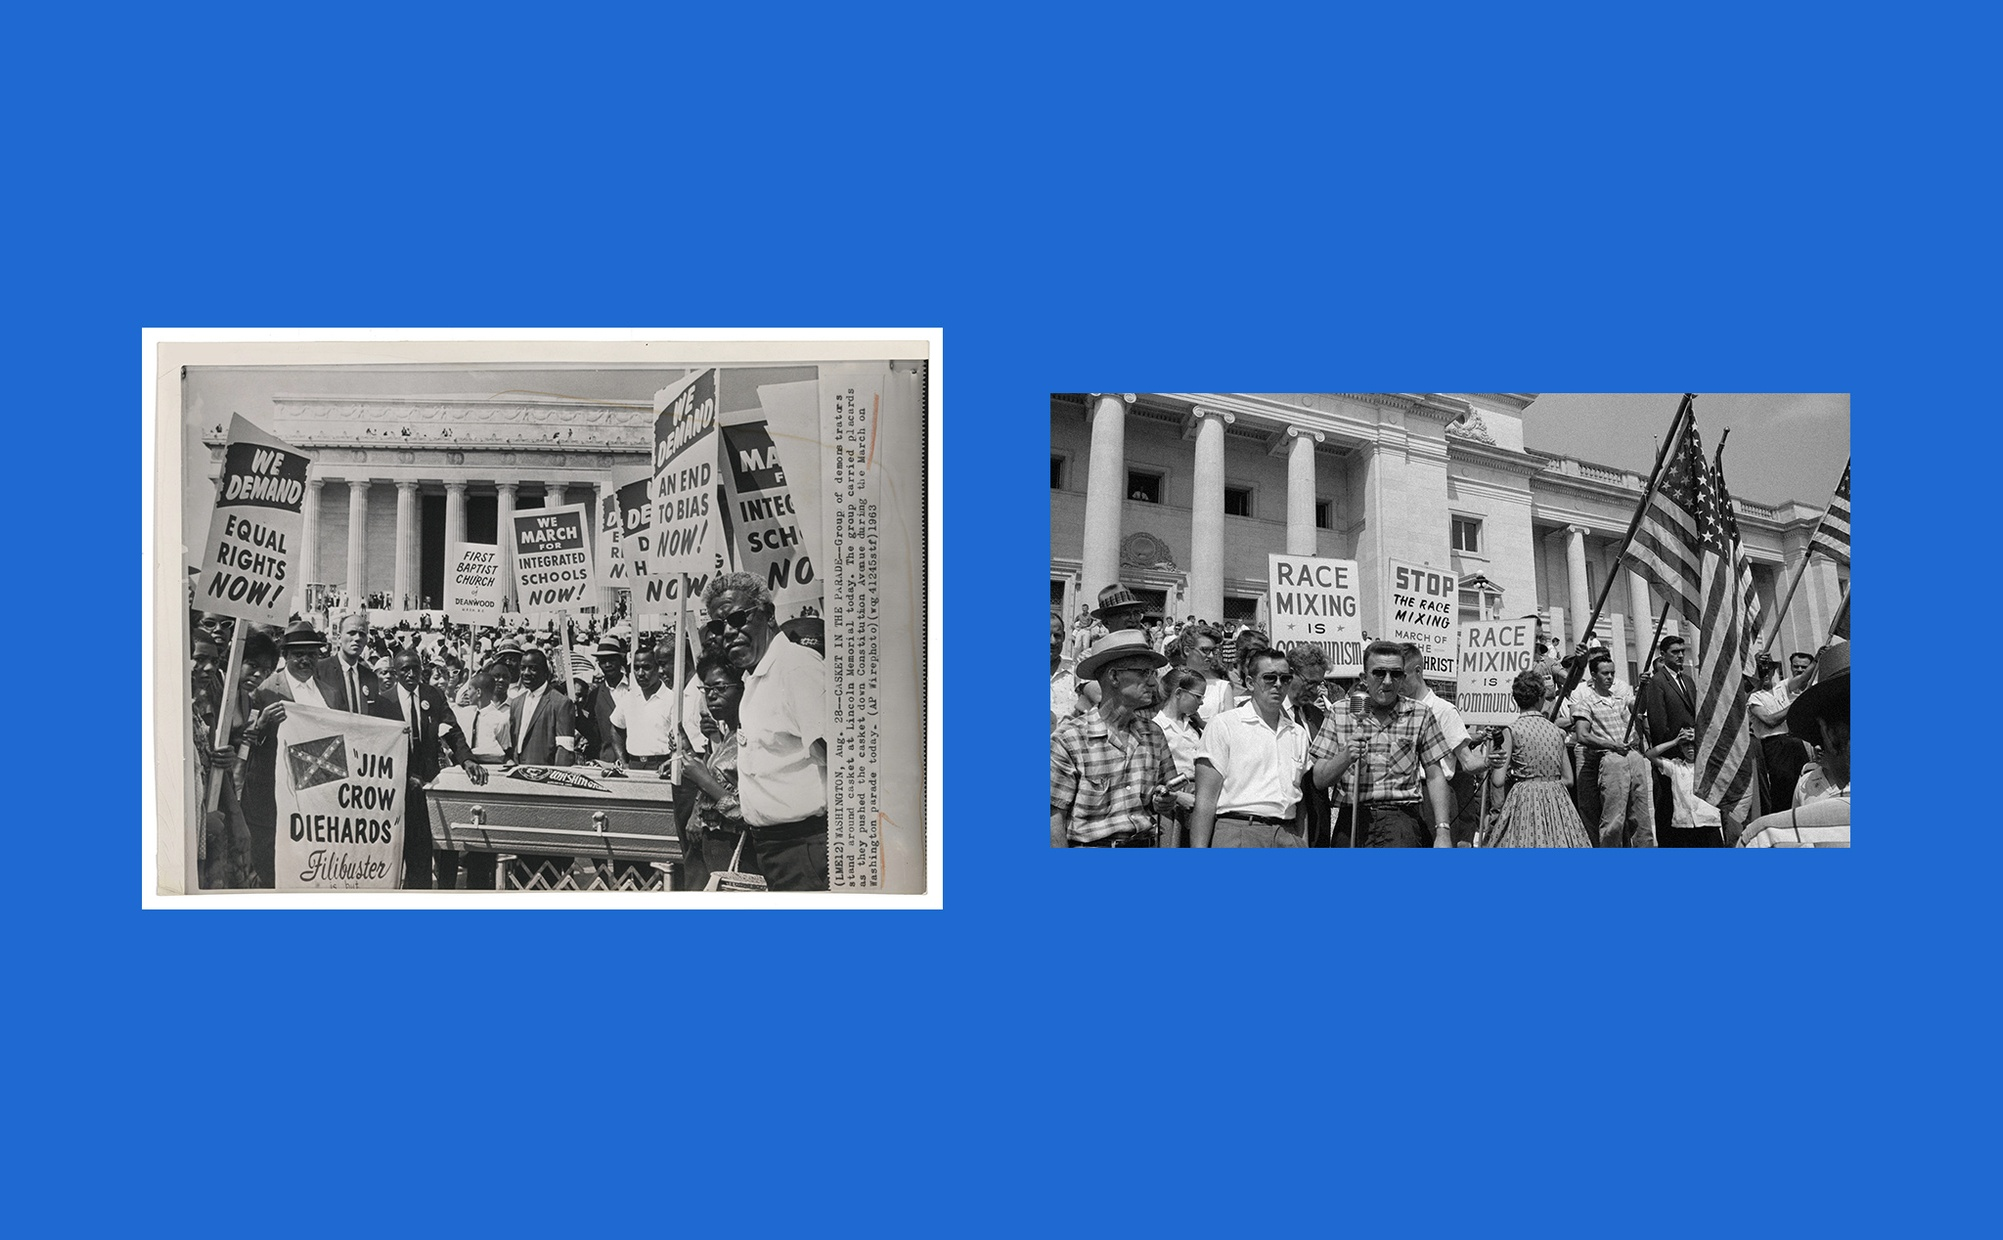 Two images side by side, one image is a black and white photograph of crowd of mostly dark-skinned people surrounding a casket and holding protest signs at the Lincoln Memorial, and the other image is a crowd of light-skinned people holding protest signs and American flags in front of a large building with columns.